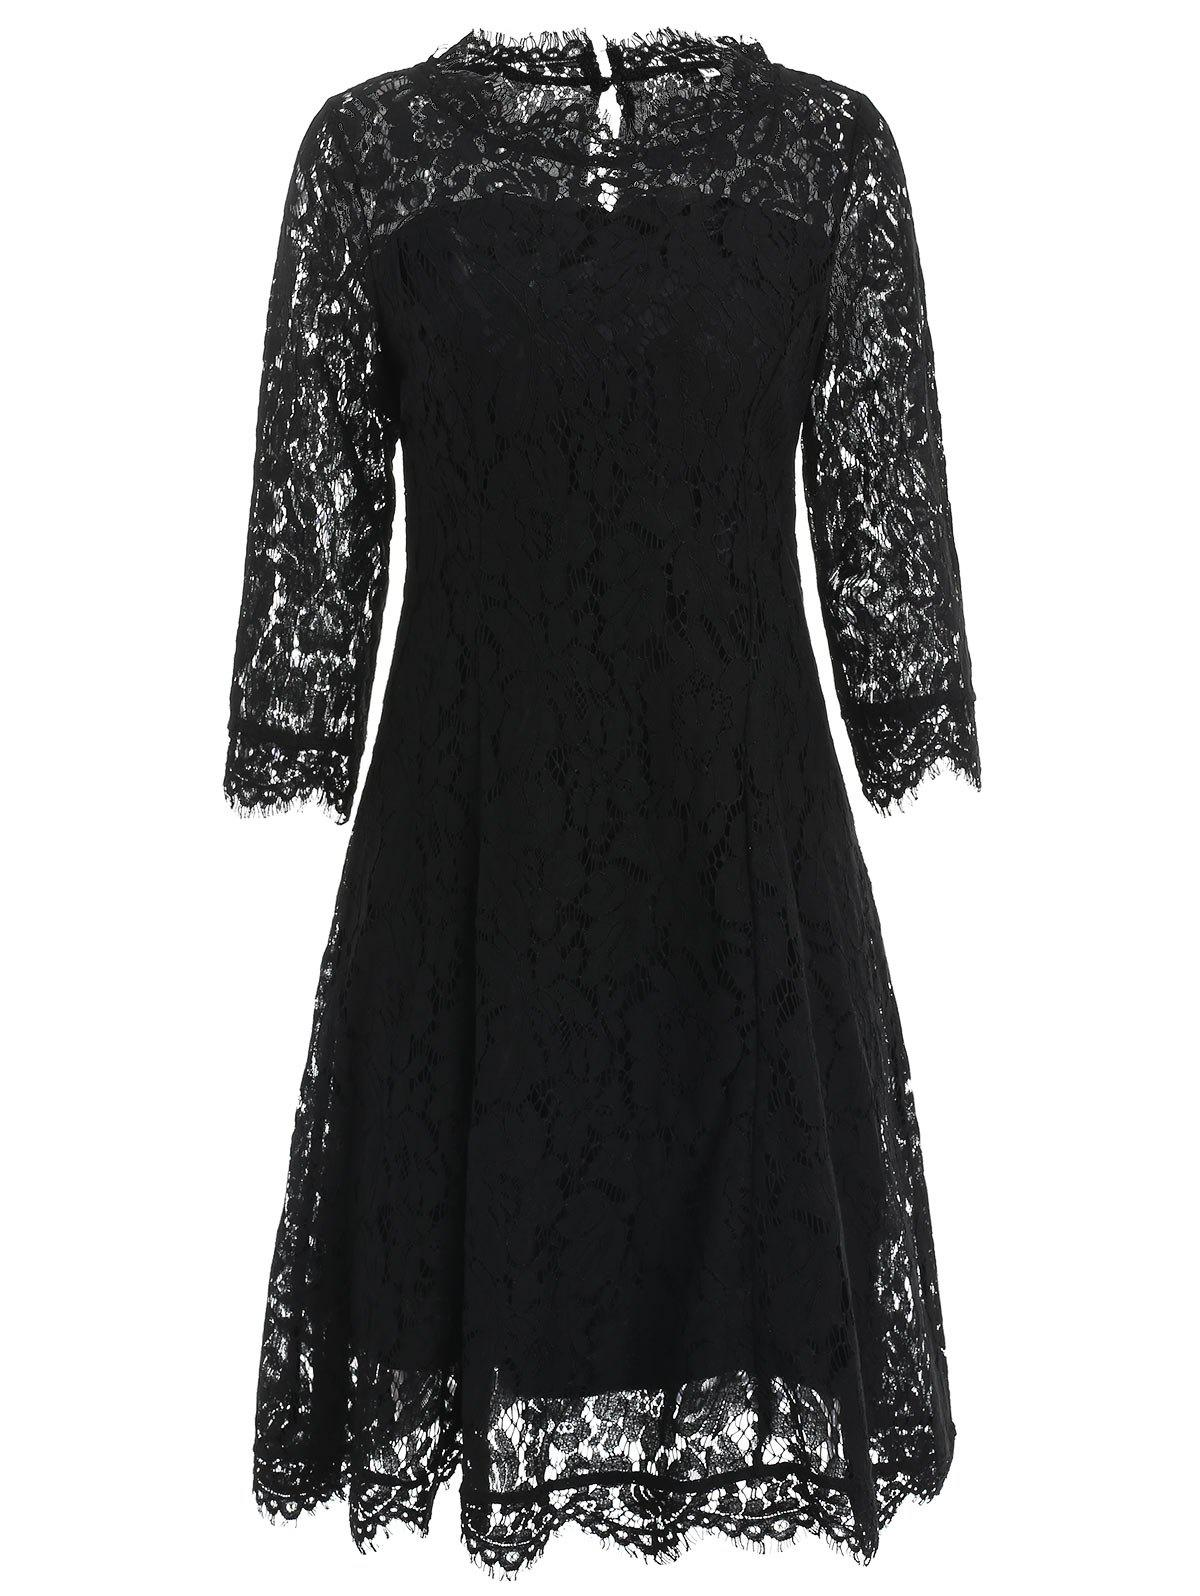 Chic Floral Lace Party Dress